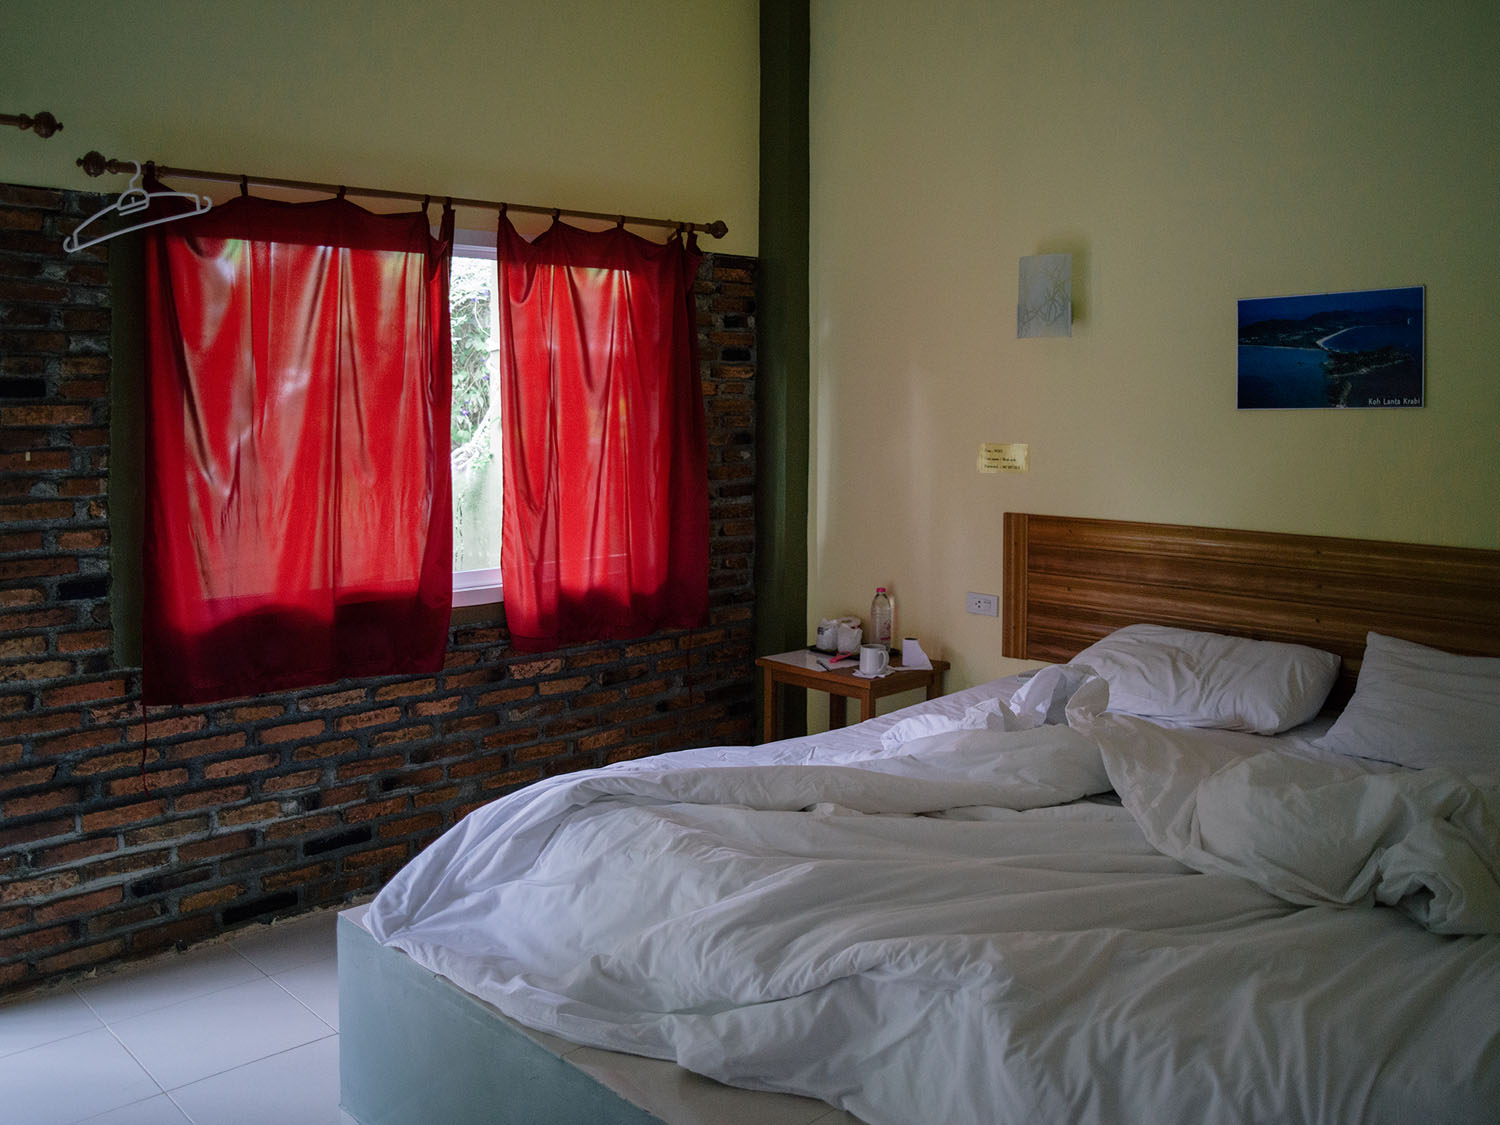 Our favorite room in Thailand. Koh Lanta.